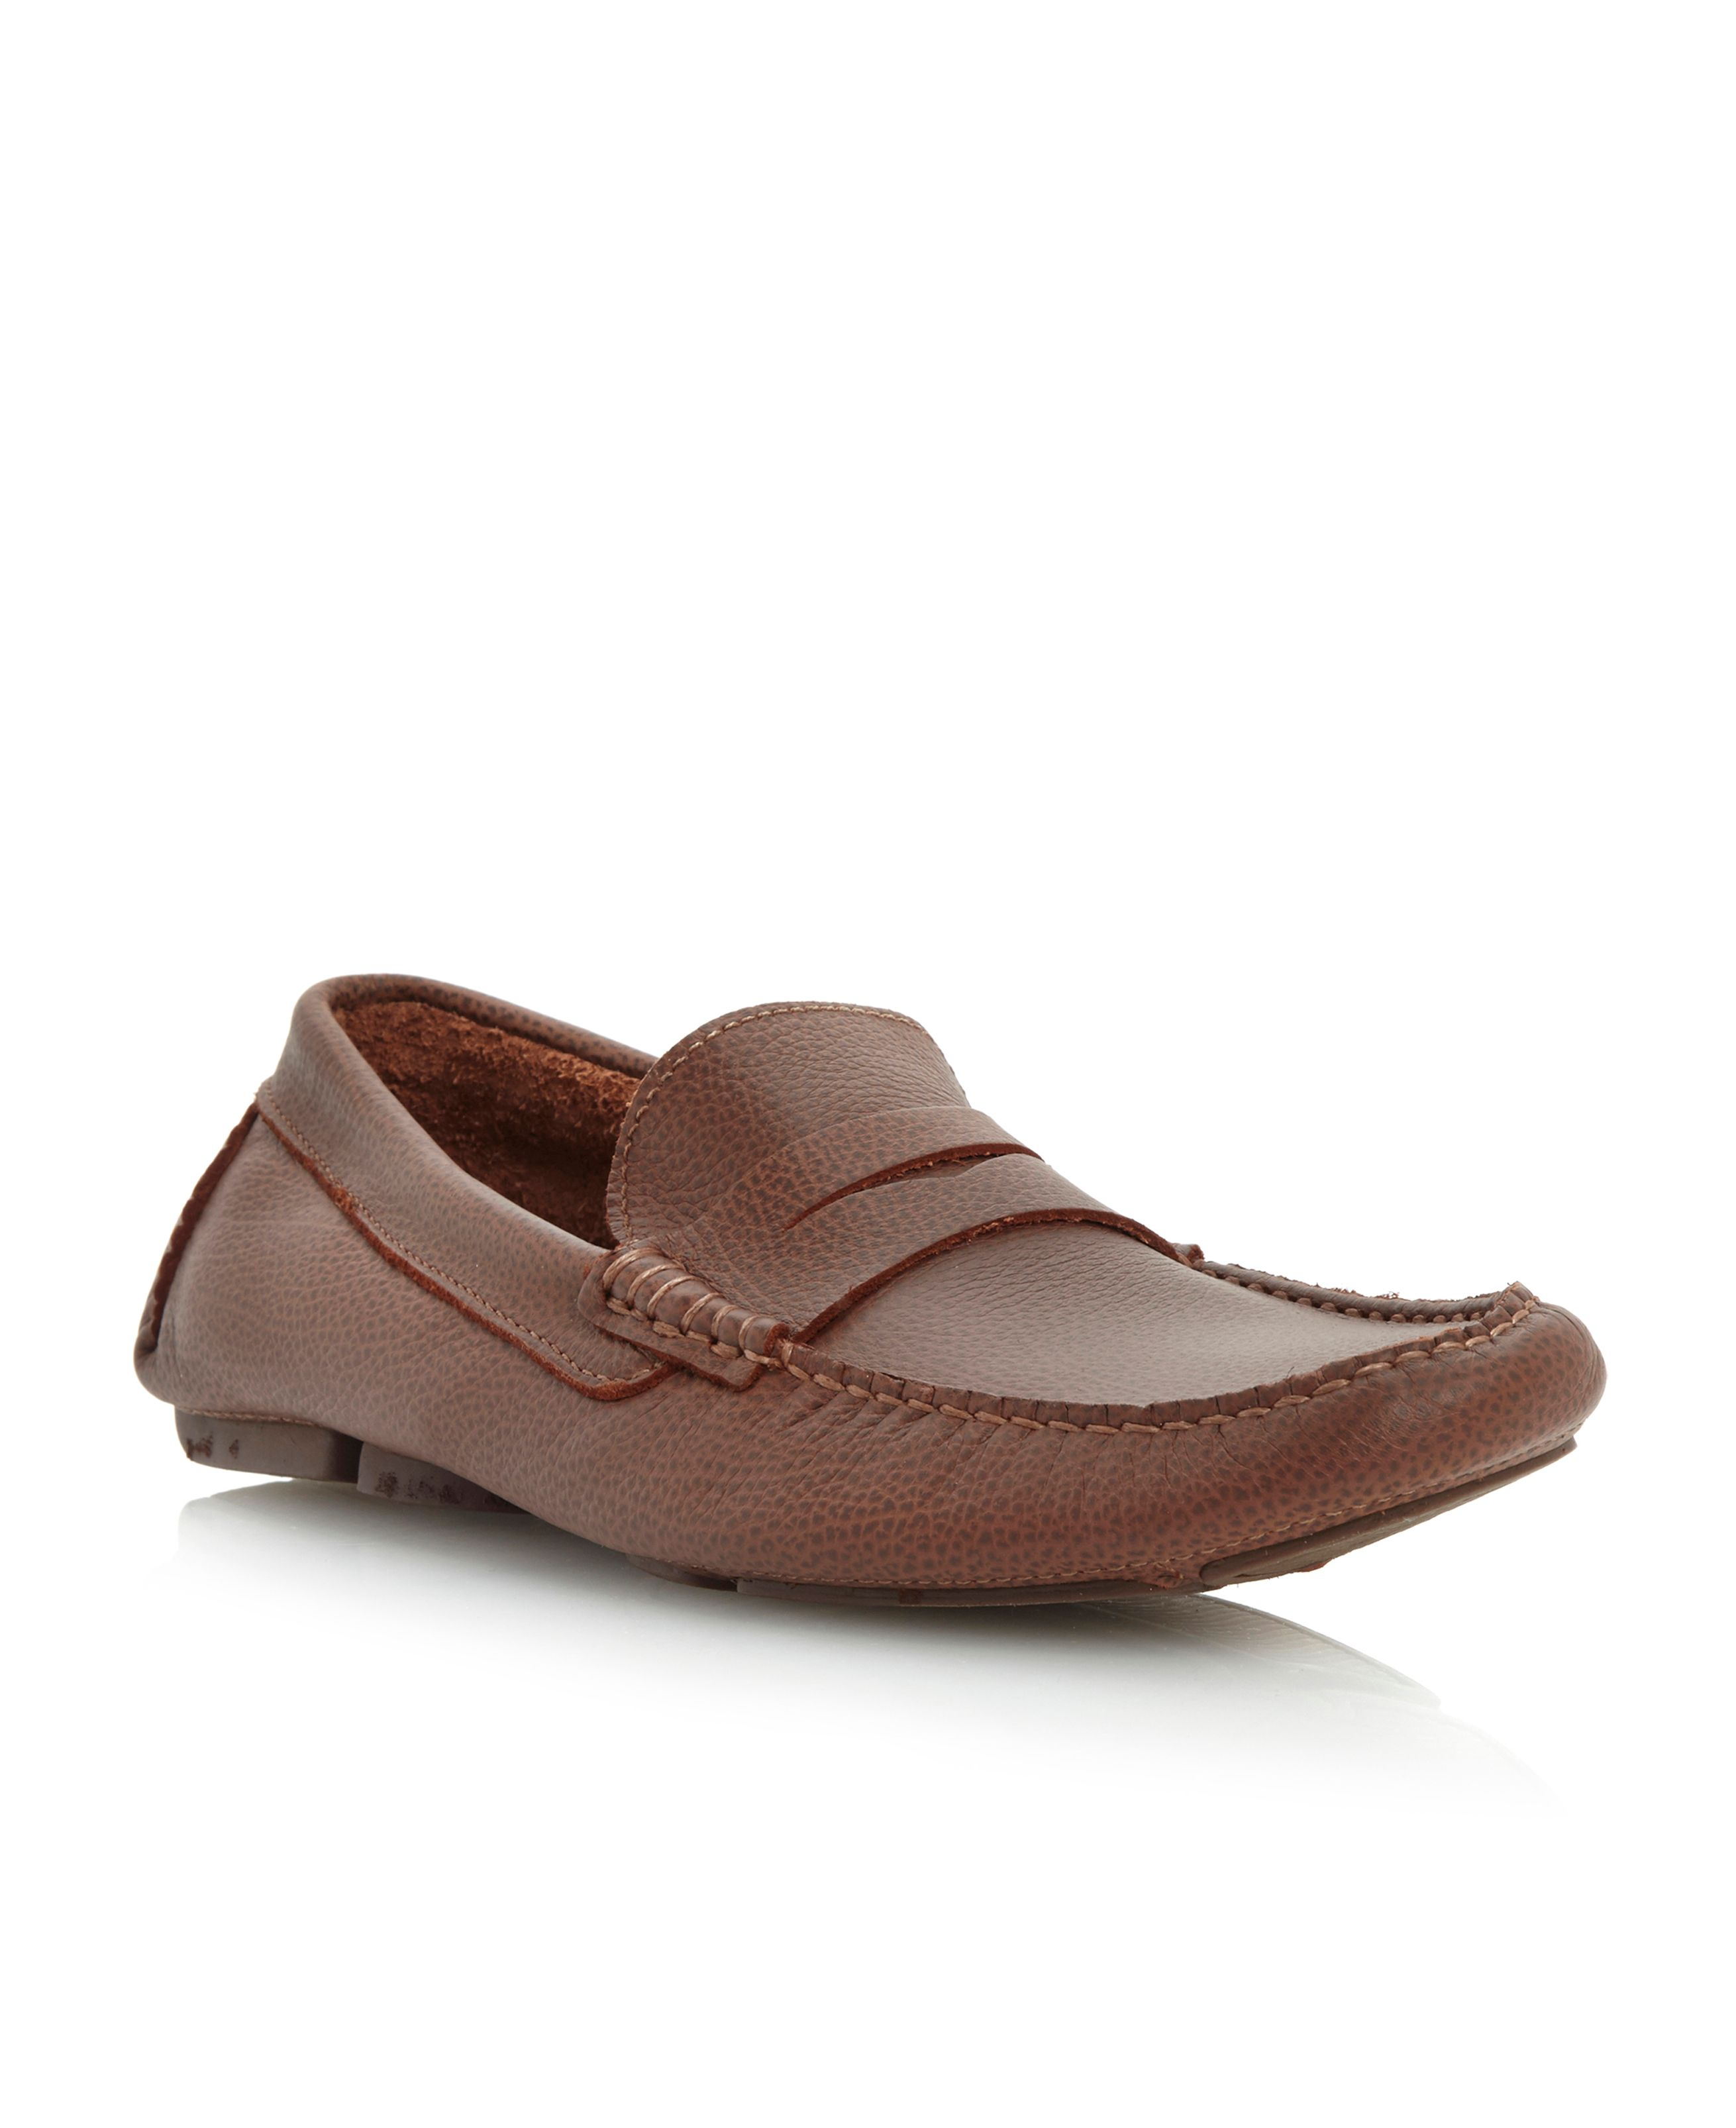 Benny penny saddle driver shoes